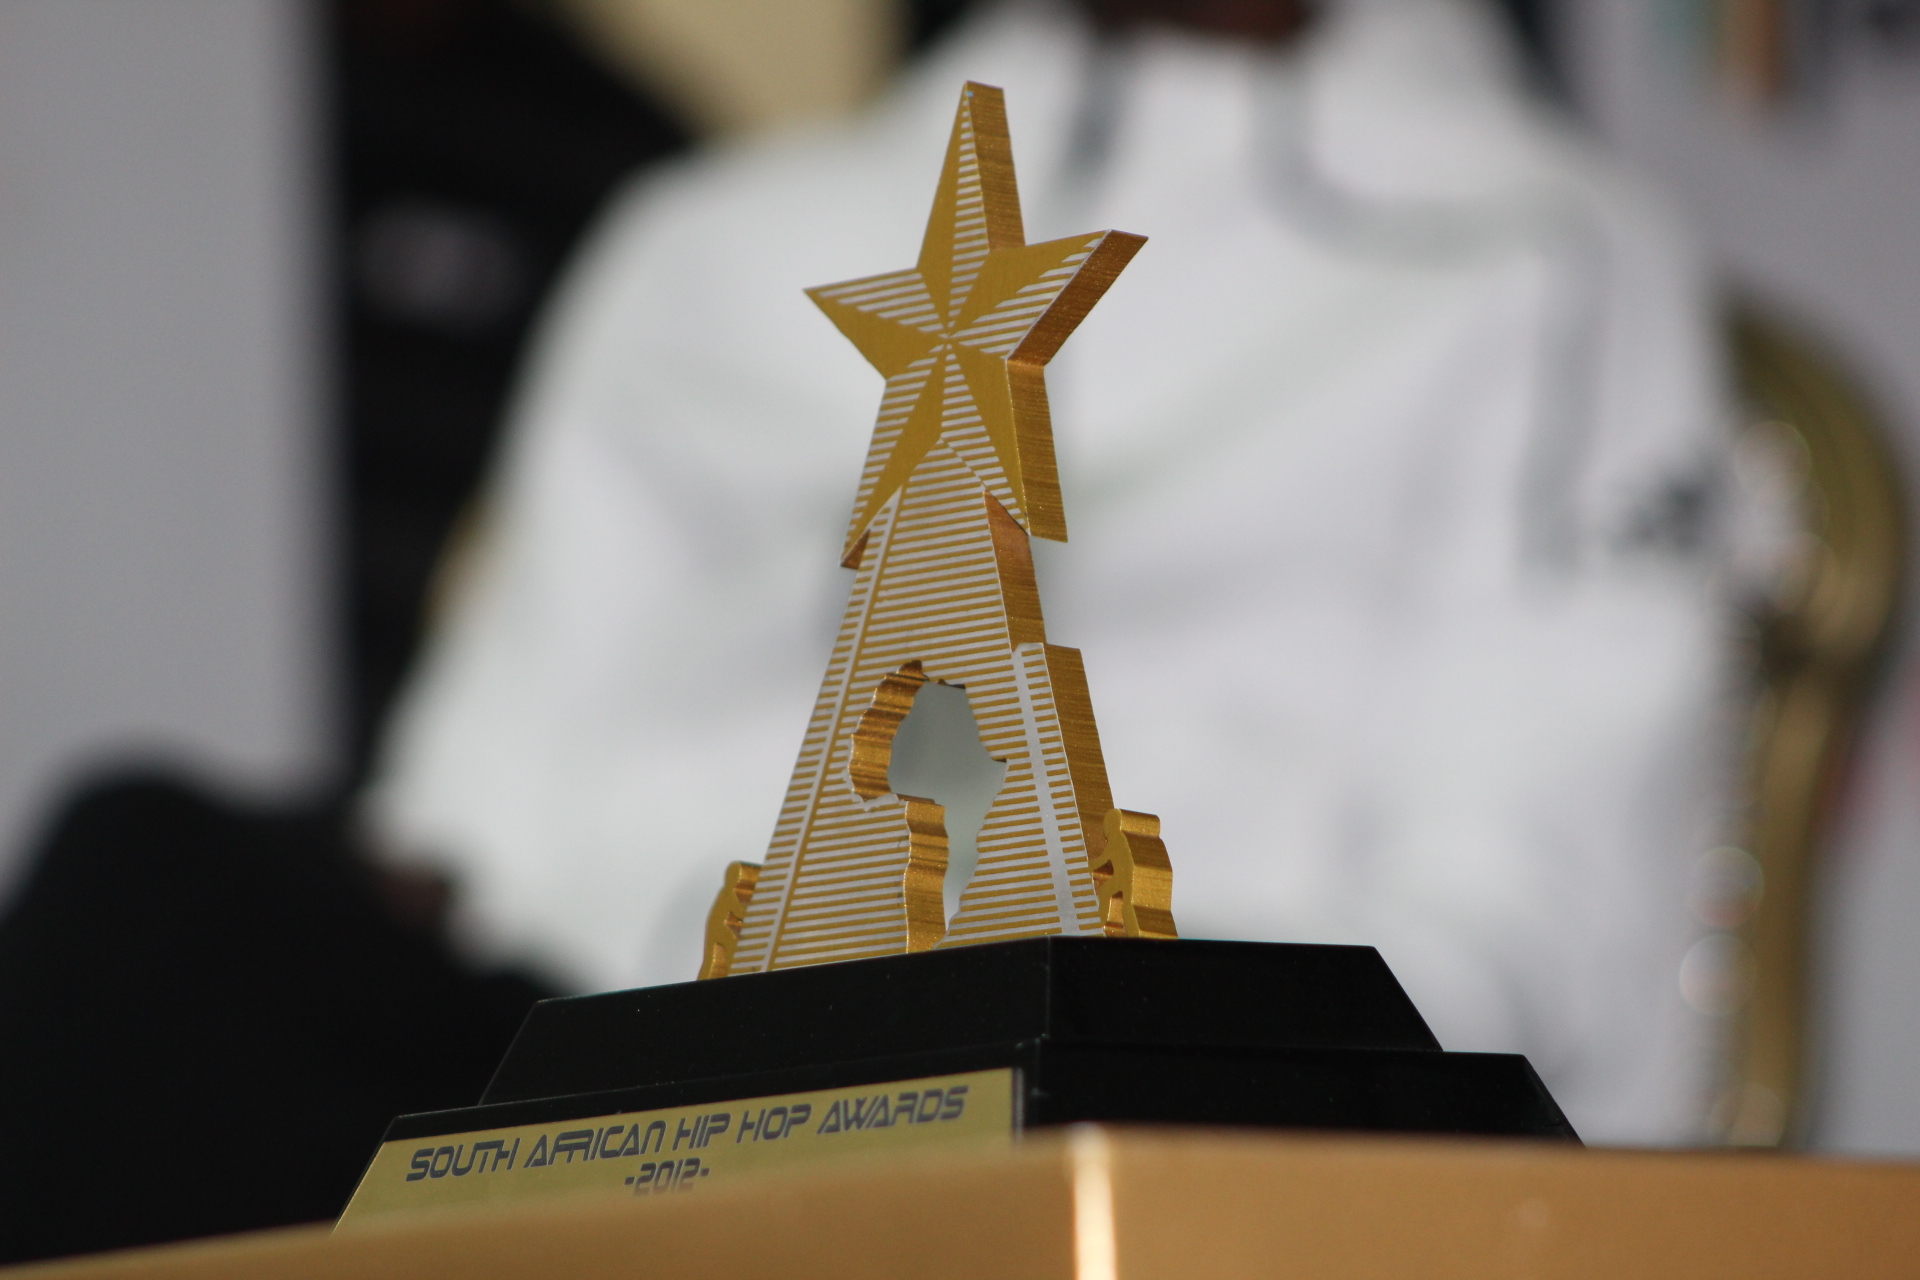 The SA Hip Hop Awards are back again this year with the 7th annual ceremony happening on Wednesday, the 19th of December at The Lyric Theatre, Gold Reef City, Johannesburg, where great achievements within the local hip hop culture will be celebrated.